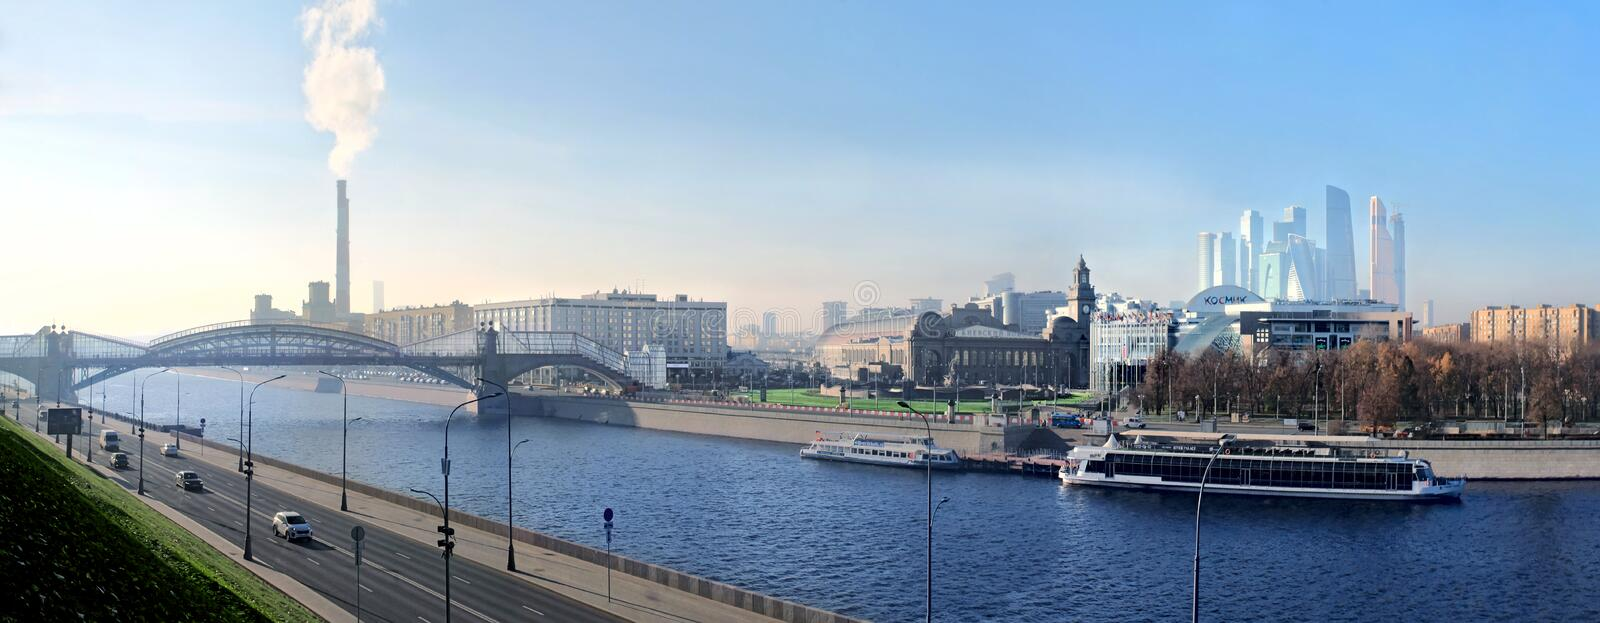 View to Moscow River with boats, bridge, Kiev Railway Station and skyscrapers of Business Center. Moscow royalty free stock photo